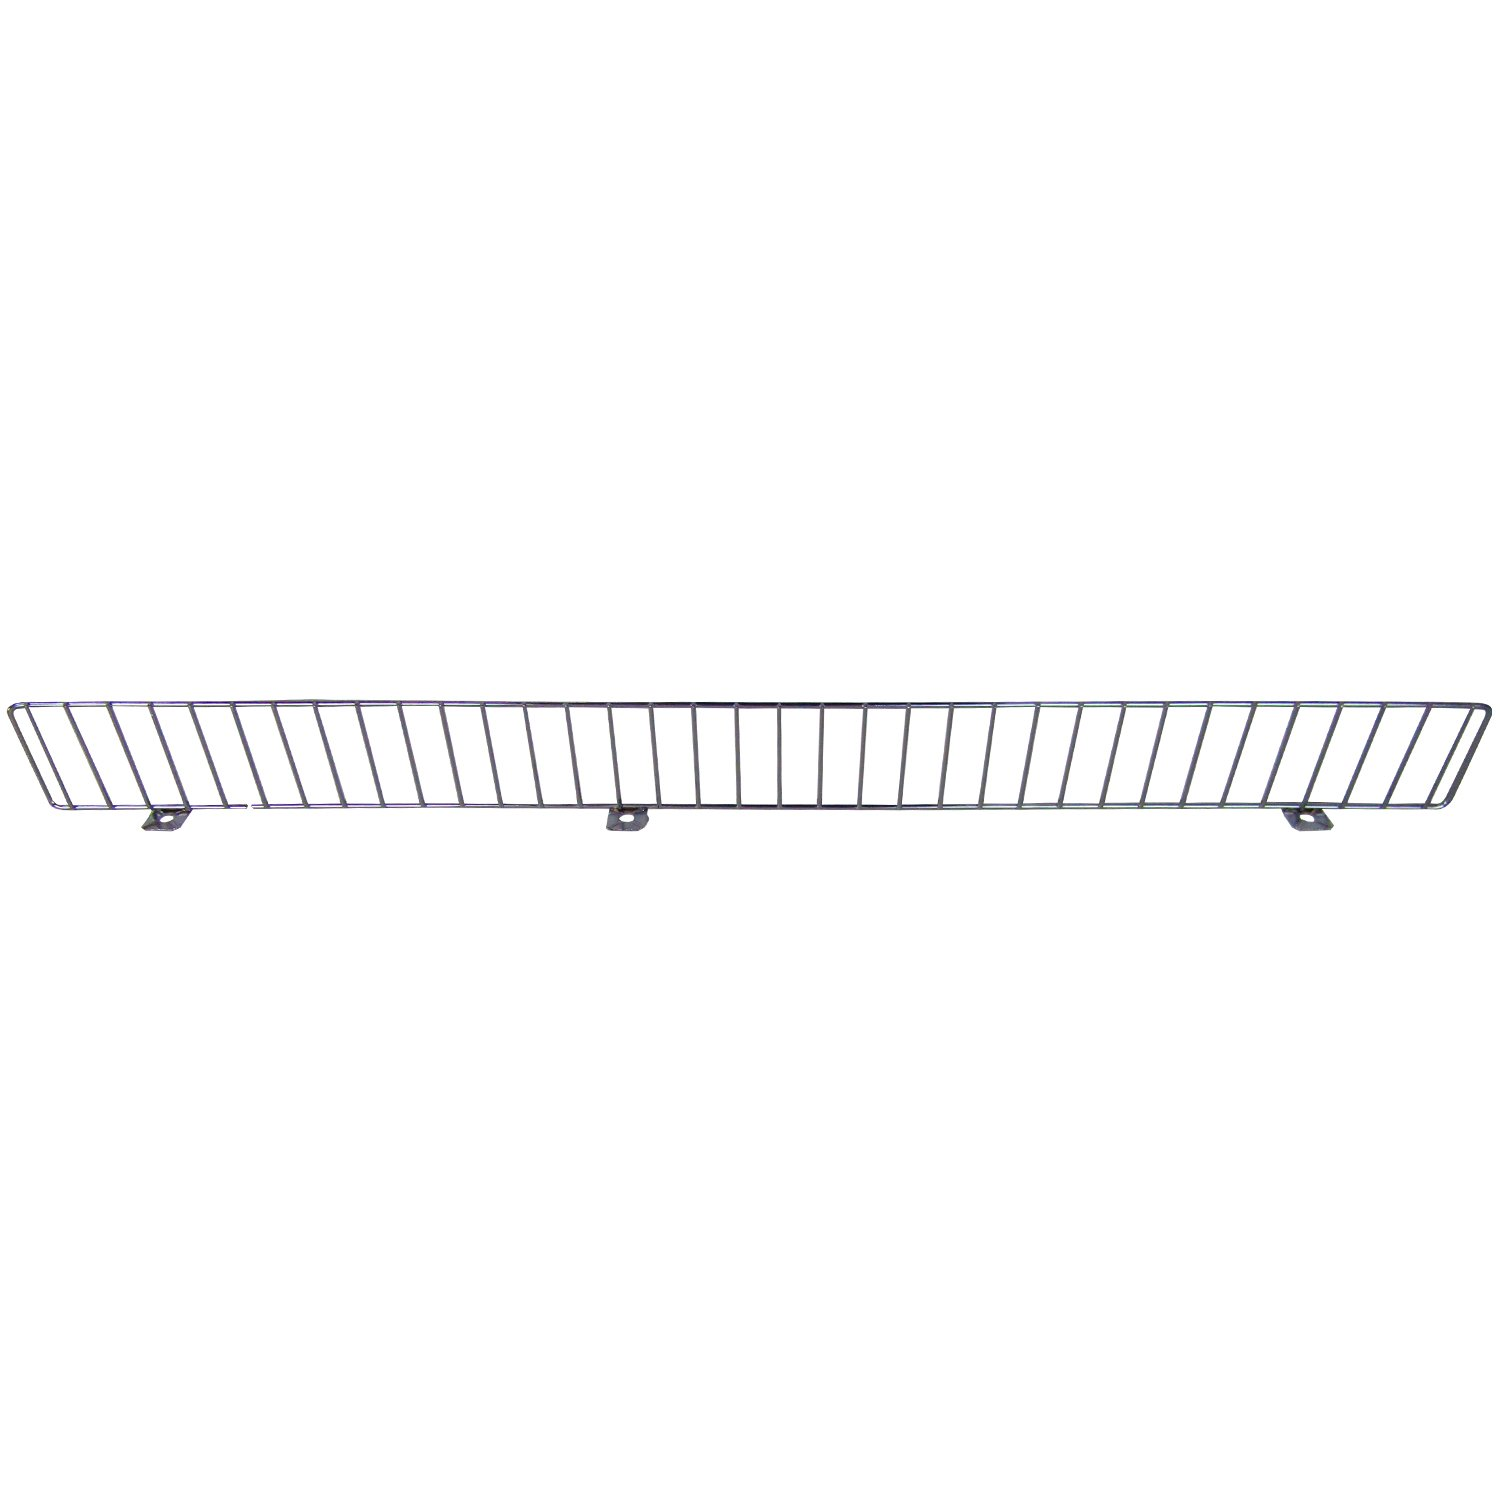 AWP CA-FDF336CN-2 Chrome Front Fence Streater, 3 x 36 Size, Chrome, (Pack of 25)